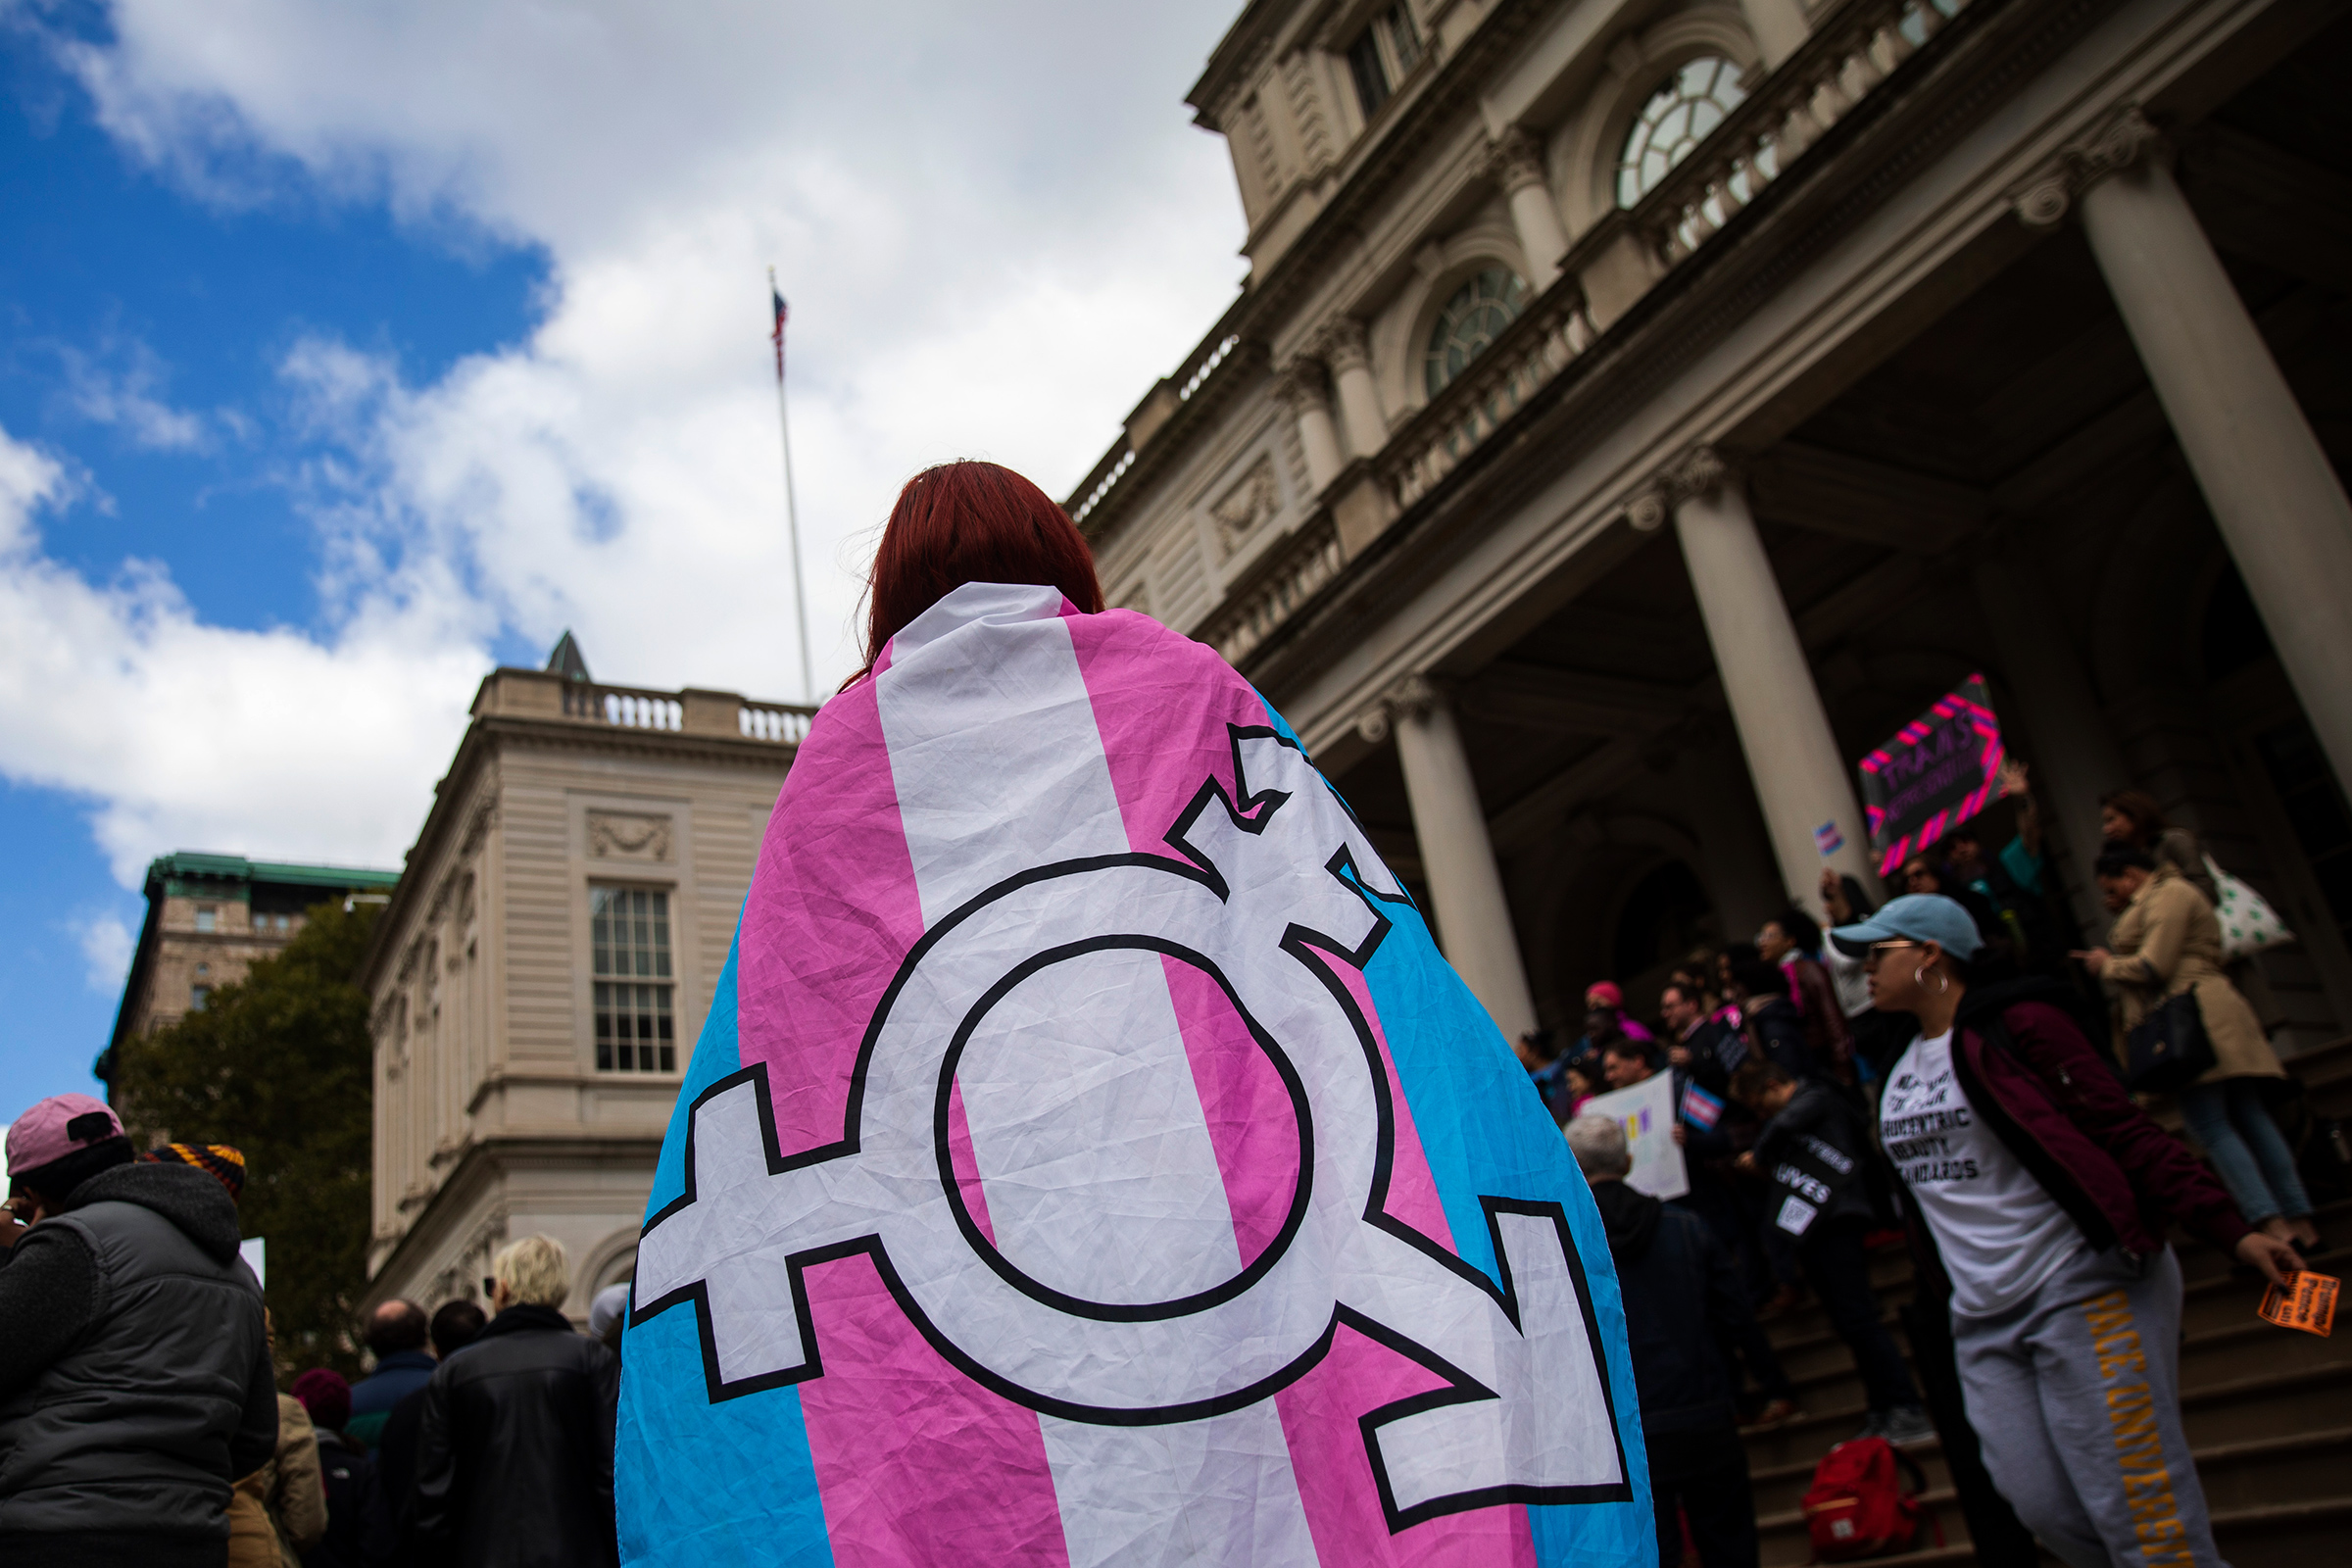 Activists and their supporters rally in support of transgender people on the steps of New York City Hall, October 24, 2018 in New York City.